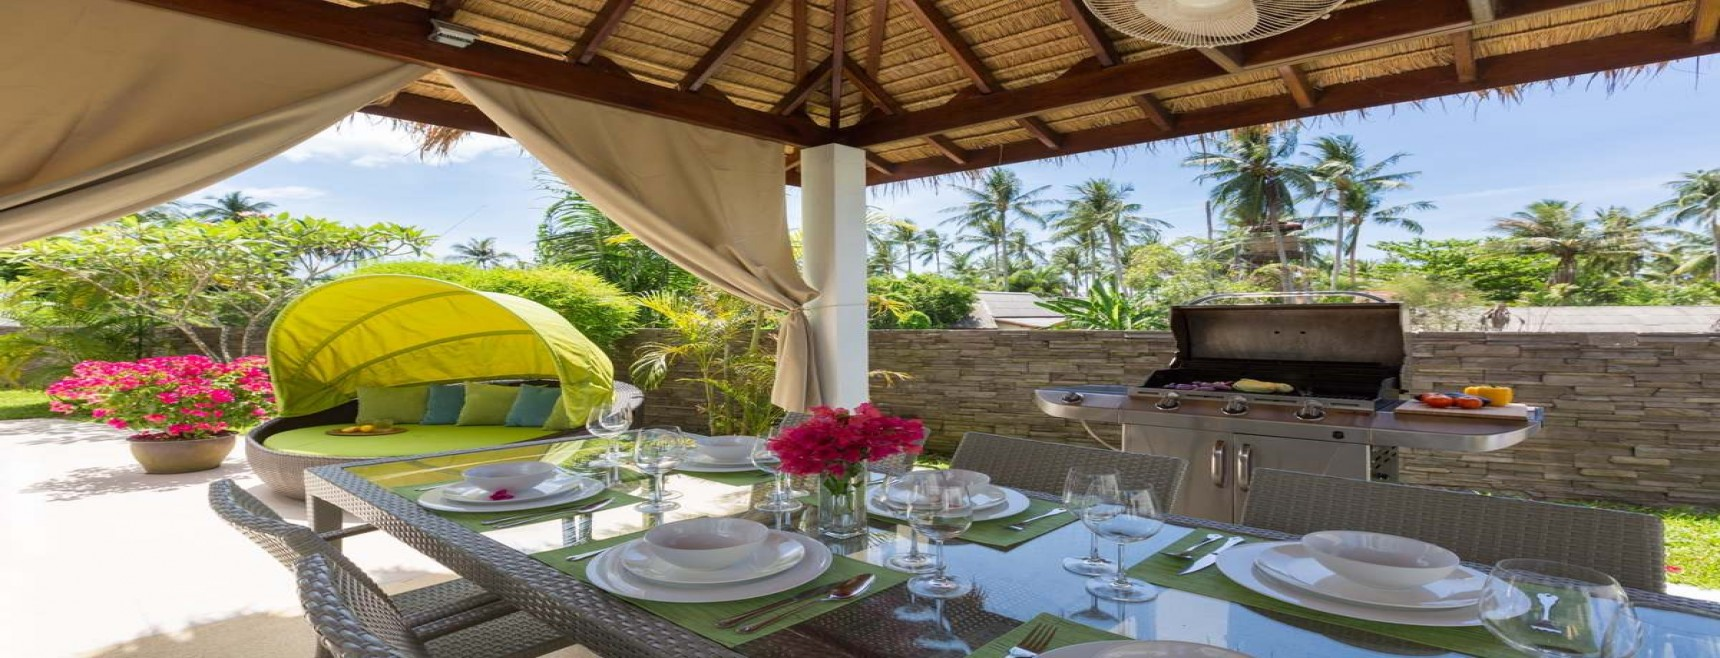 Villa, Residential Sales, Listing ID 1354, Ban Tai, North West, Koh Samui,